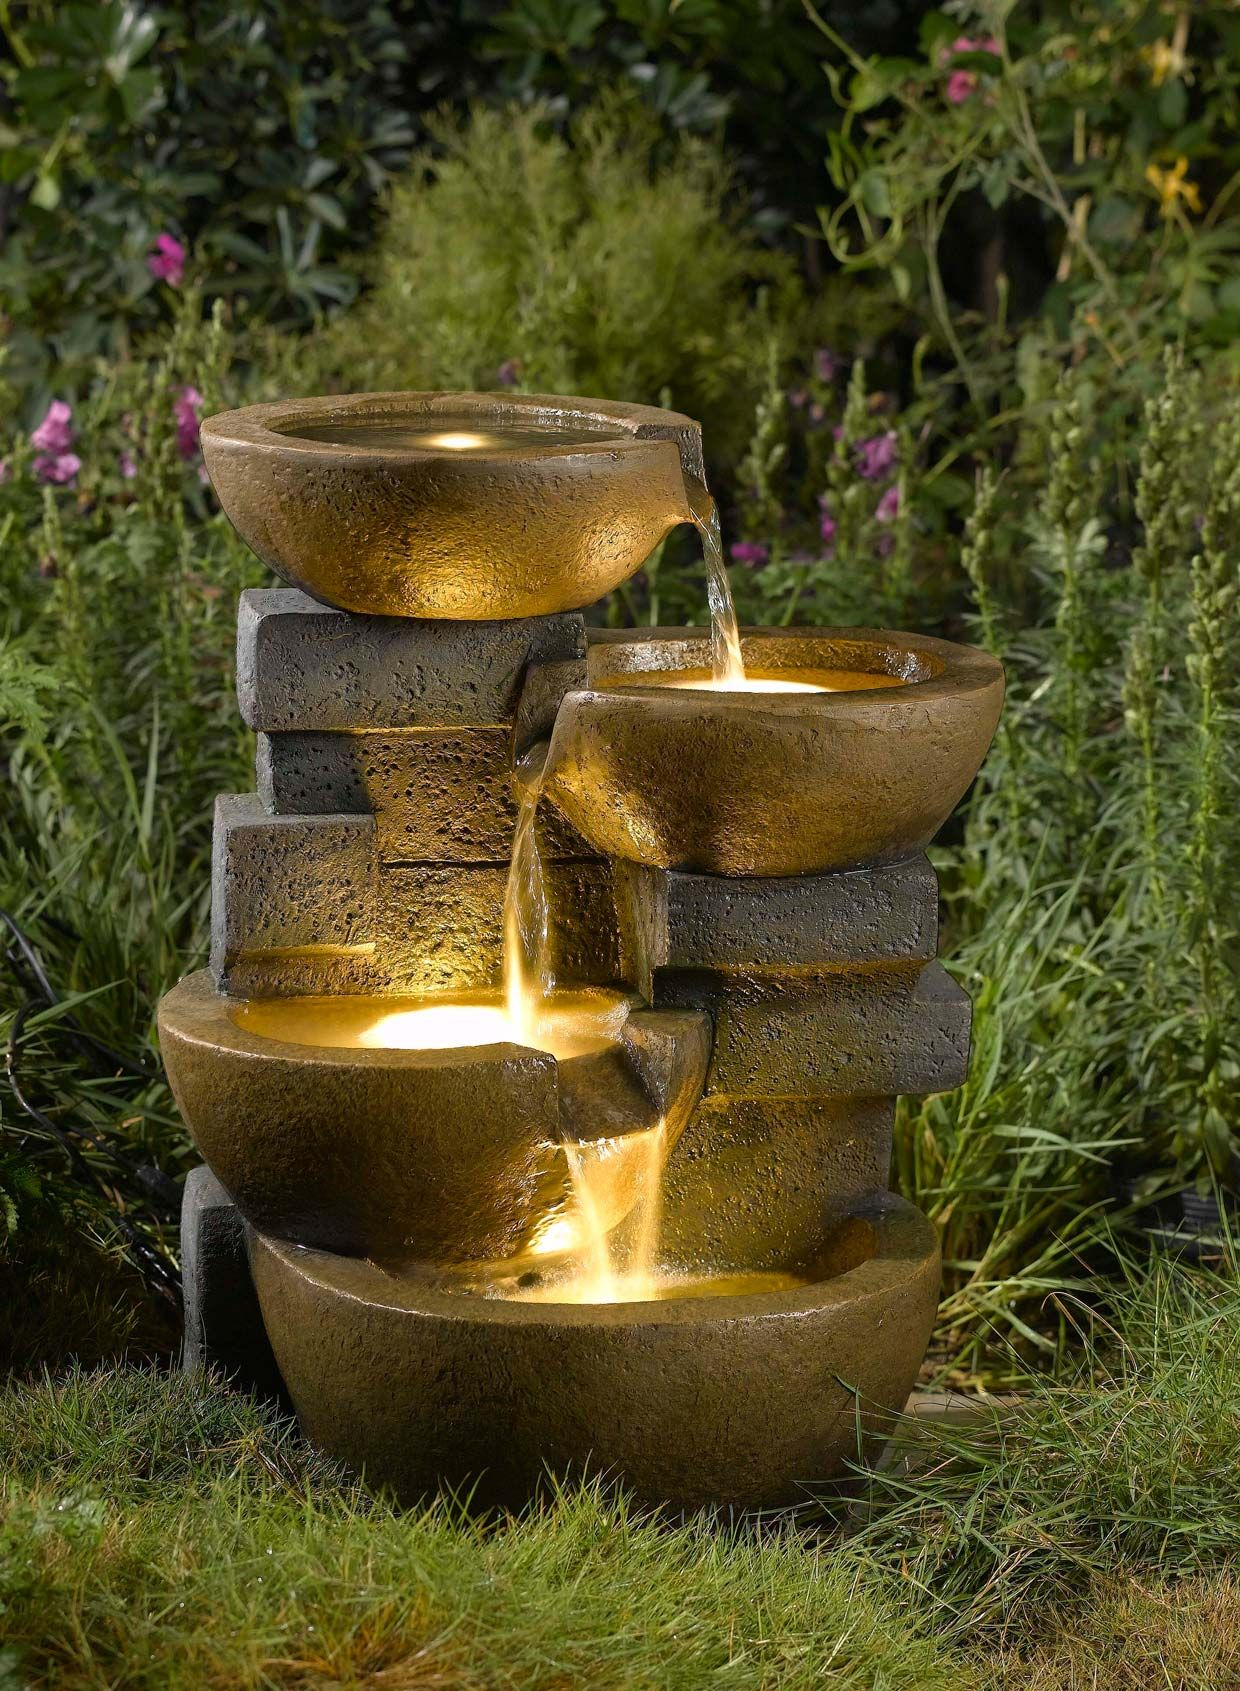 Pots Water Fountain With Led Light Water Fountains Outdoor Garden Water Fountains Indoor Water Fountains Outdoor water fountains with lights